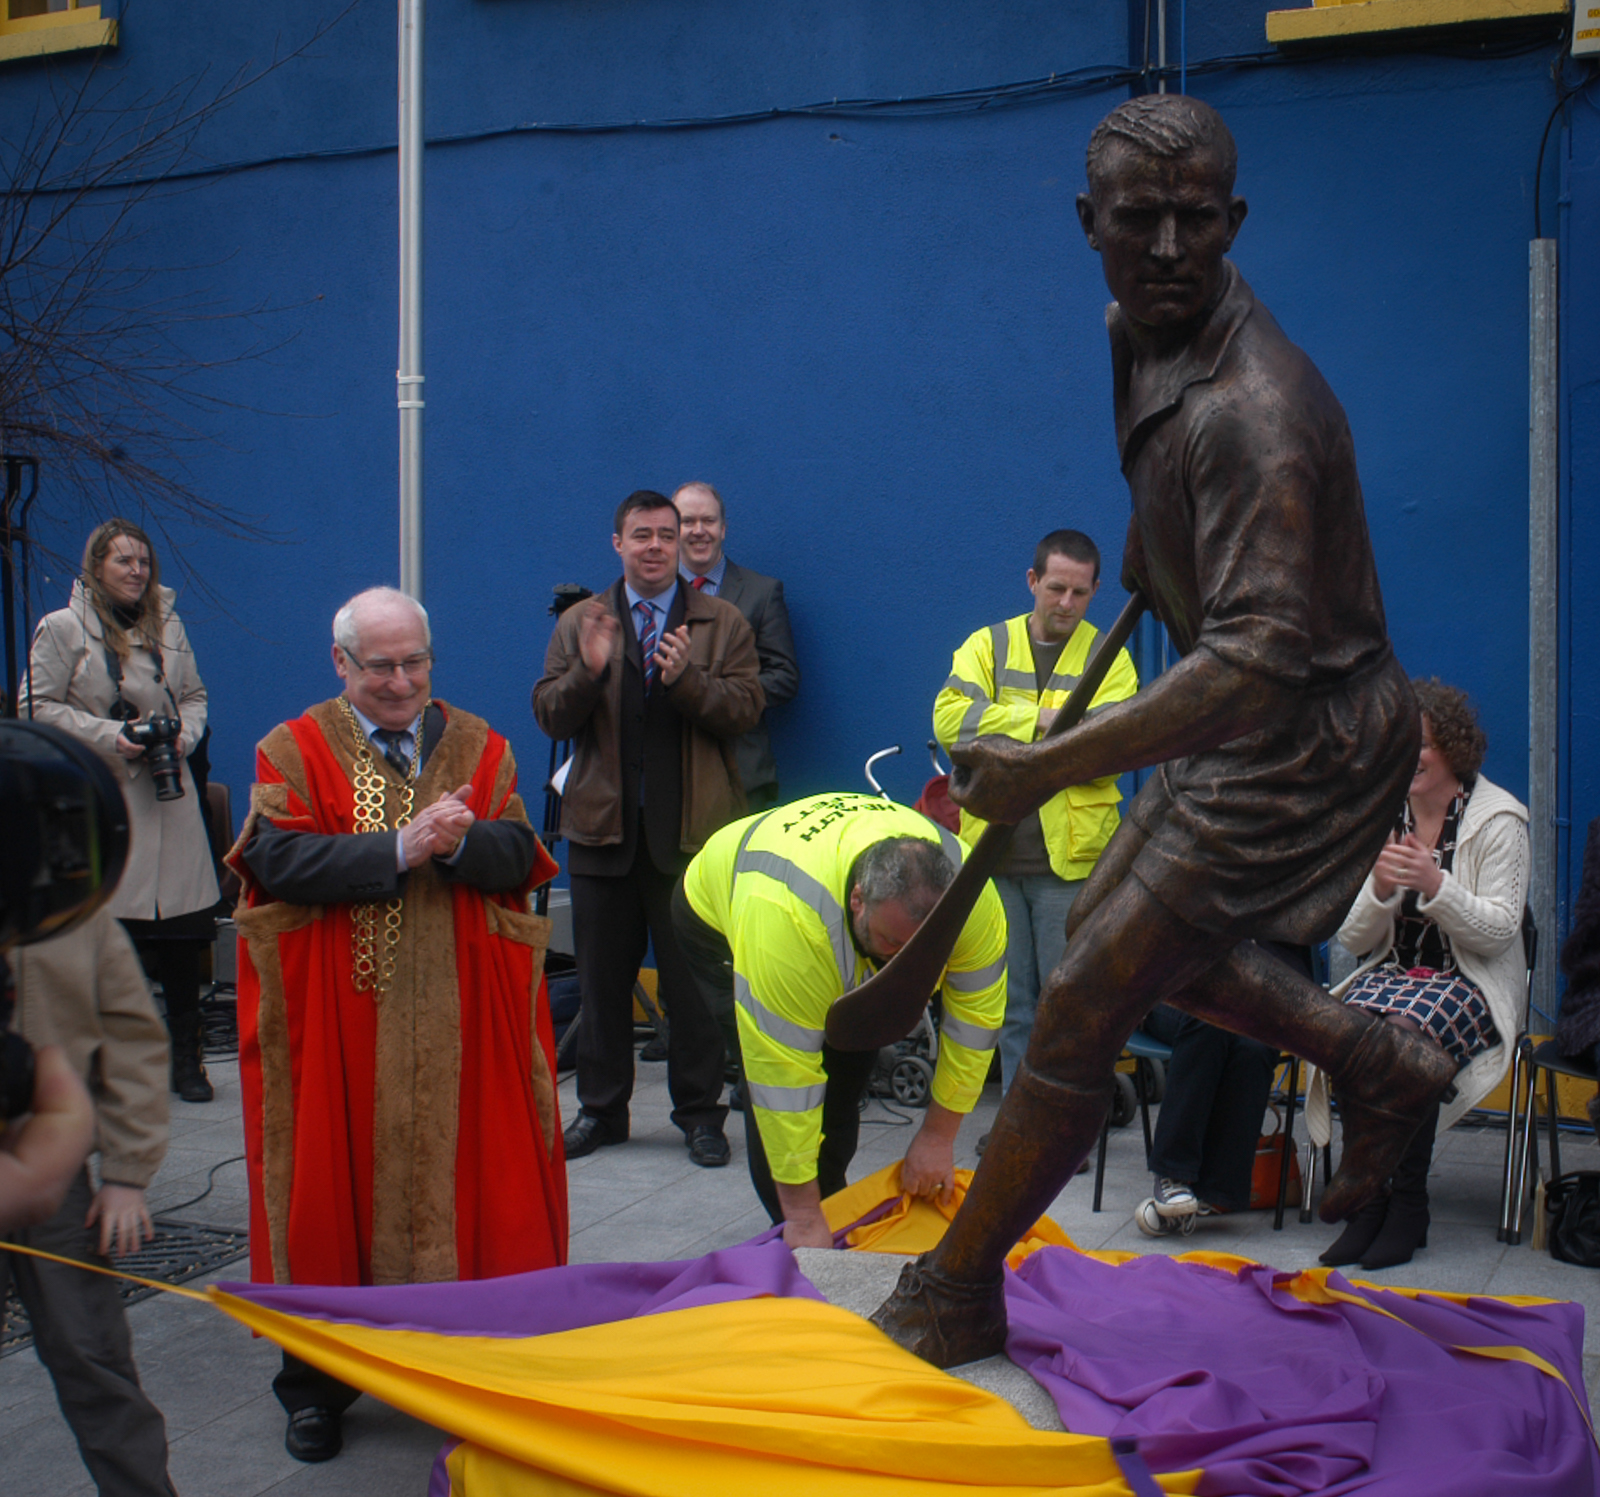 - The work was unveiled on 19th March 2012 by Major David Haines and Nickey's three grandchildren.